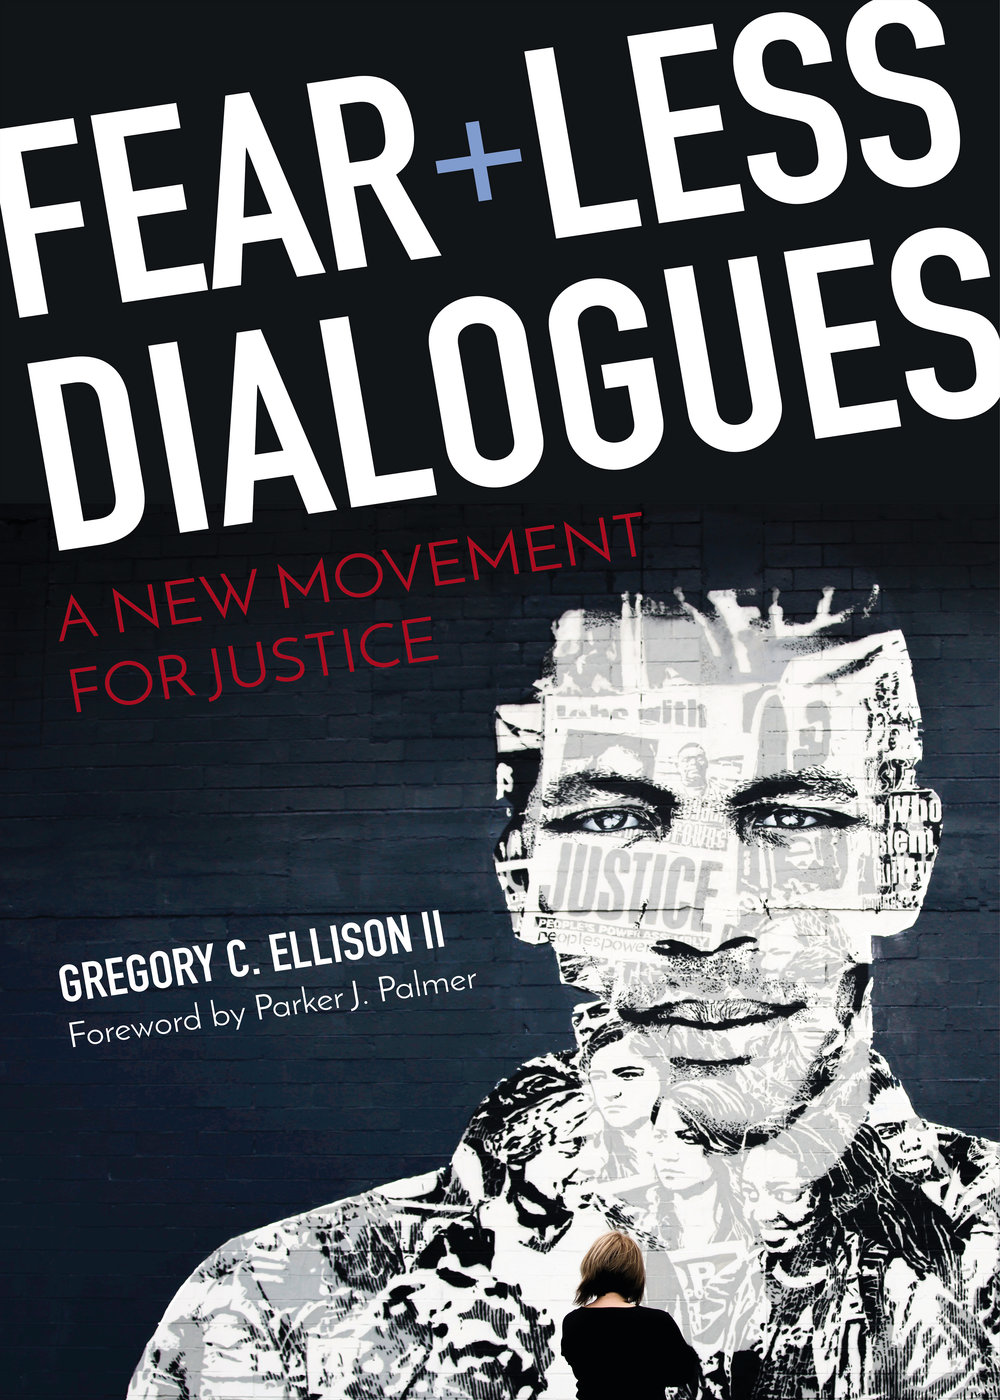 Fearless Dialogues - A New Movement for Justice (2017)